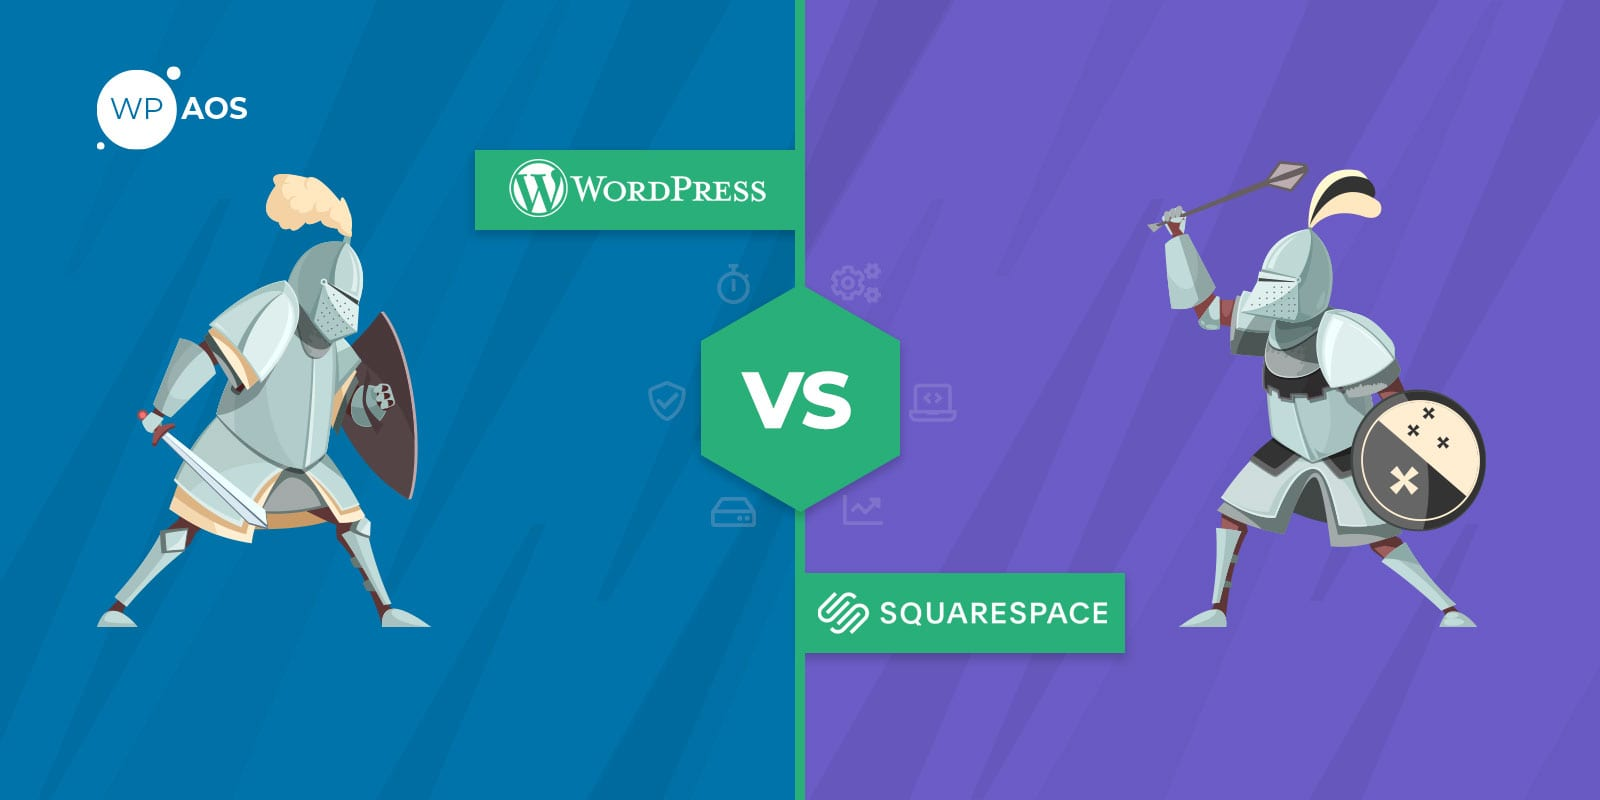 WordPress, Squarespace, Infographics, Website Builder, wpaos